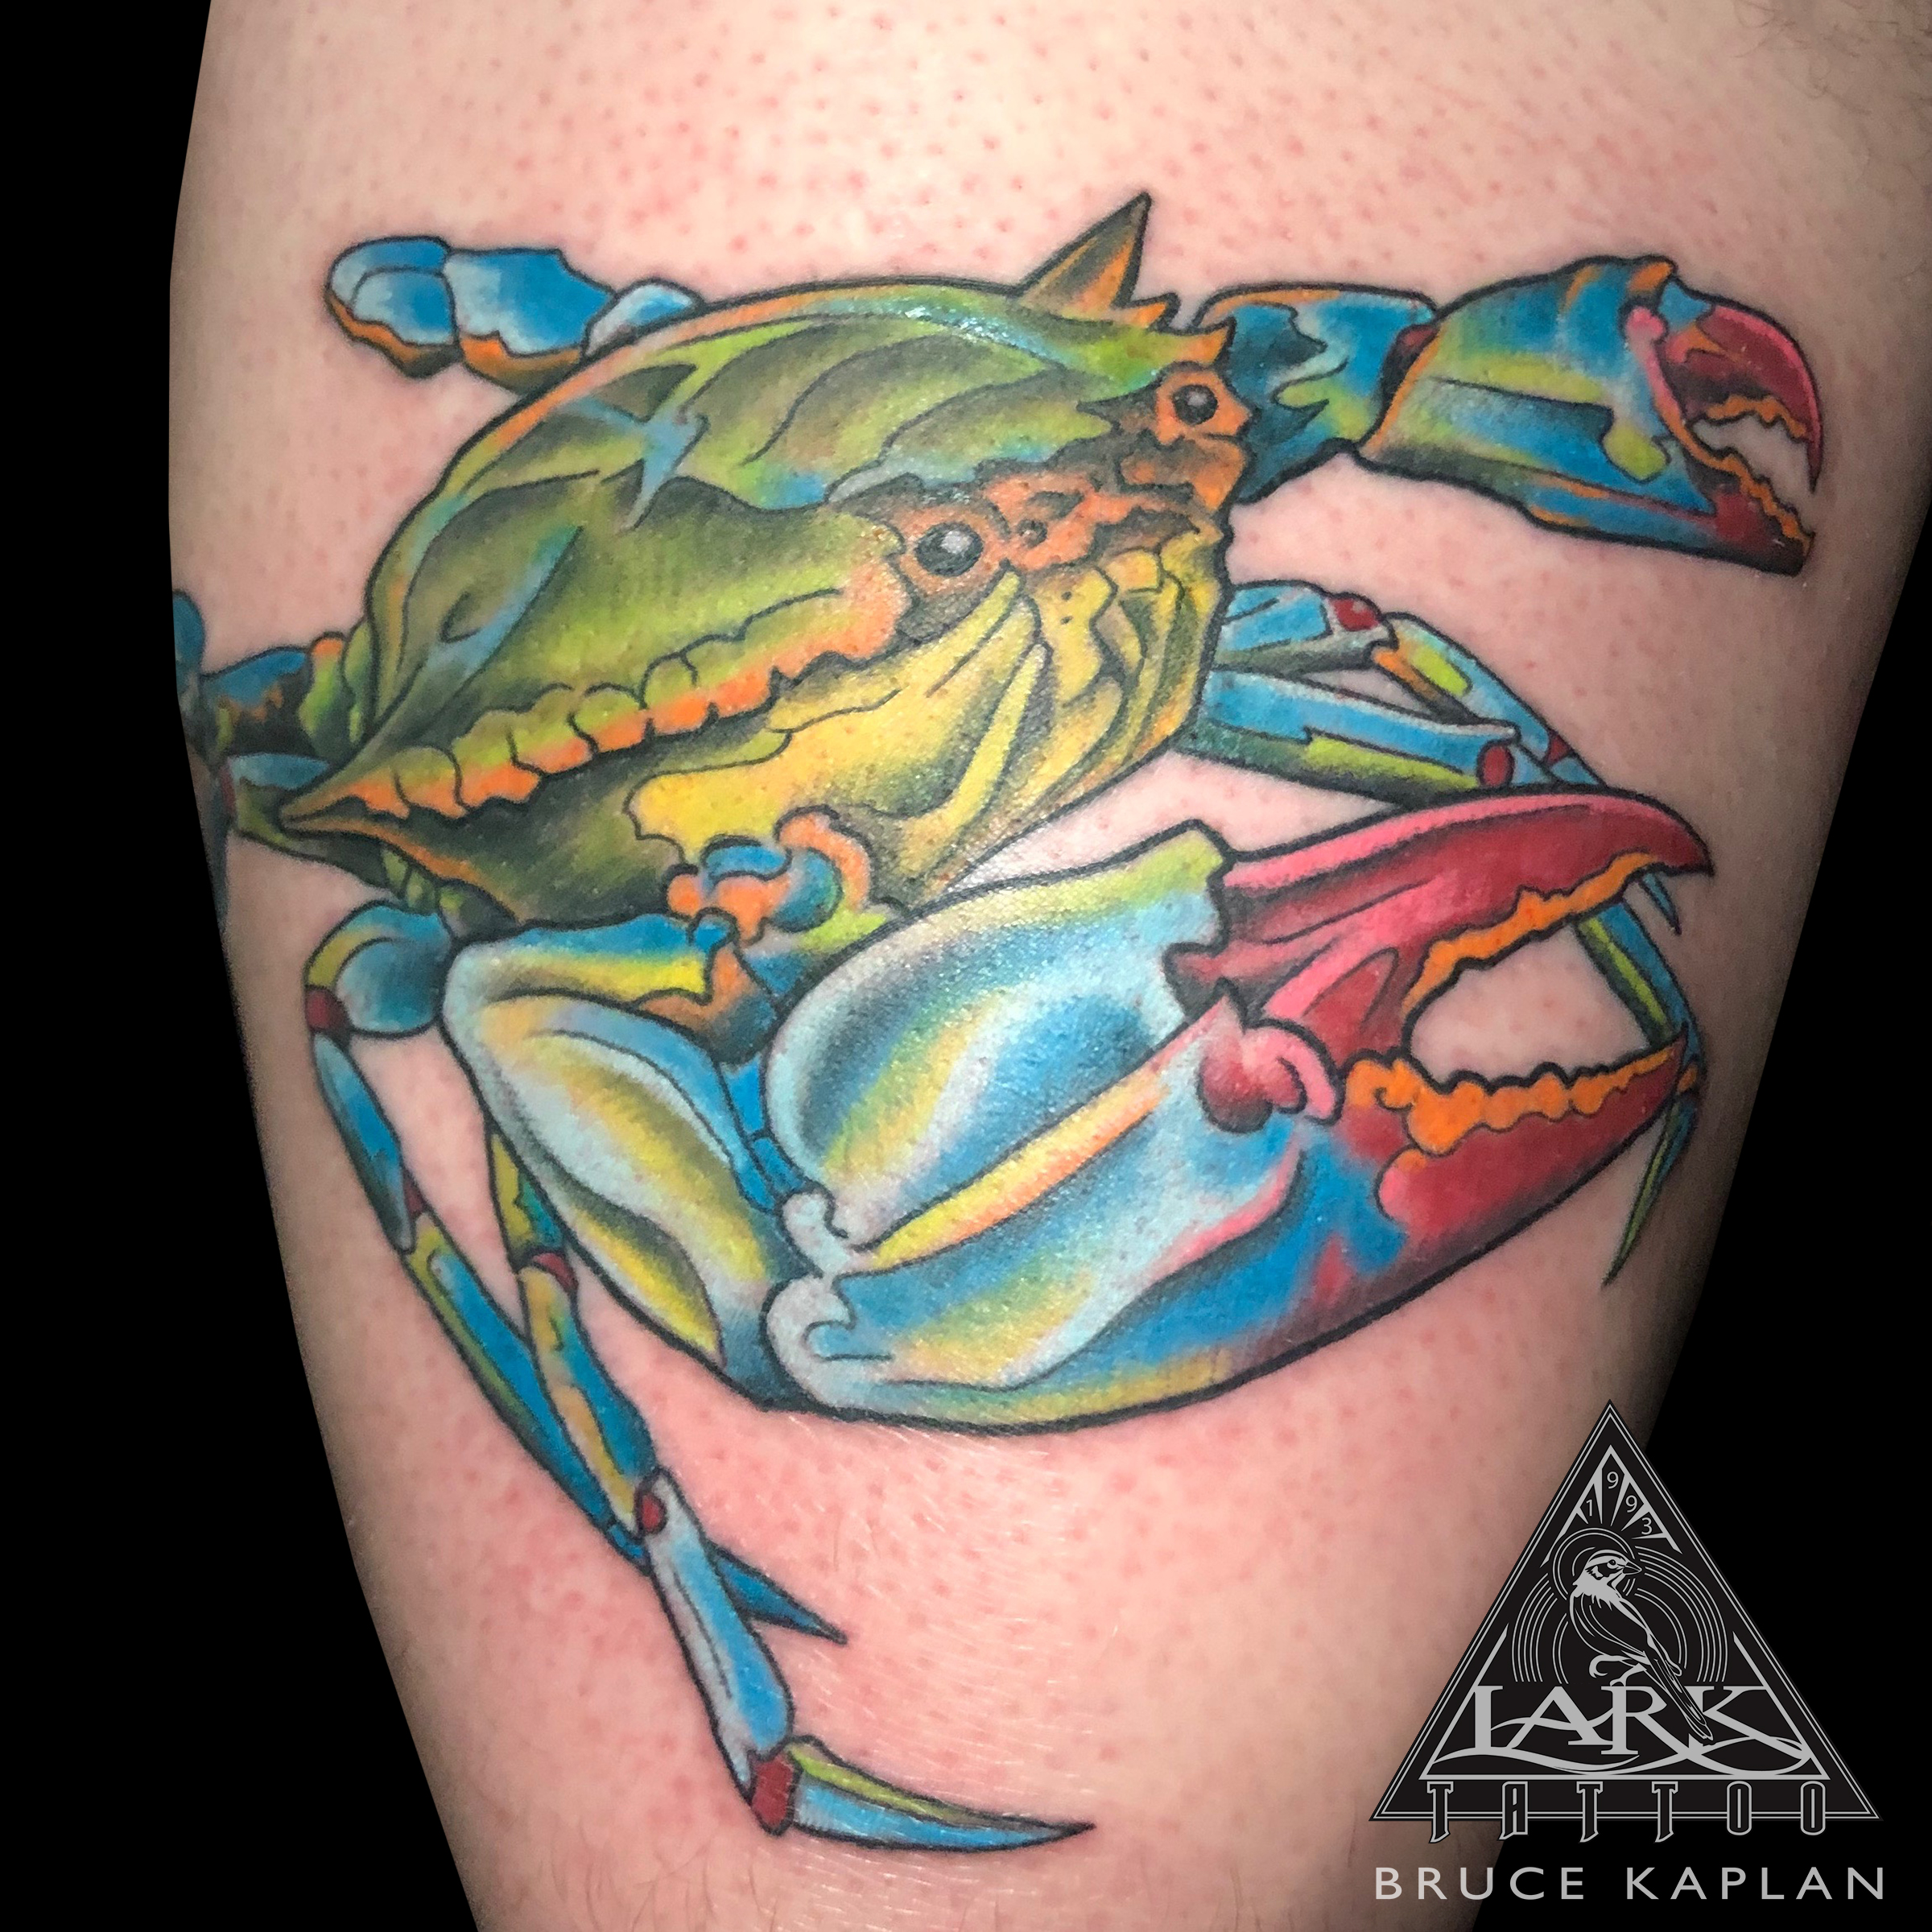 LarkTattoo, ColorTattoo, Tattoo, Tattoos, BruceKaplan, BruceKaplanTattoo, BruceKaplanLarkTattoo, Crab, CrabTattoo, BlueCrab, BlueCrabTattoo, Ocean, OceanTattoo, Sealife, SealifeTattoo, TattooArtist, Tattoist, Tattooer, LongIslandTattooArtist, LongIslandTattooer, LongIslandTattoo, TattooOfTheDay, Tat, Tats, Tatts, Tatted, Inked, Ink, TattooInk, AmazingInk, AmazingTattoo, BodyArt, LarkTattooWestbury, Westbury, LongIsland, NY, NewYork, USA, Art, Tattedup, InkedUp, LarkTattoos